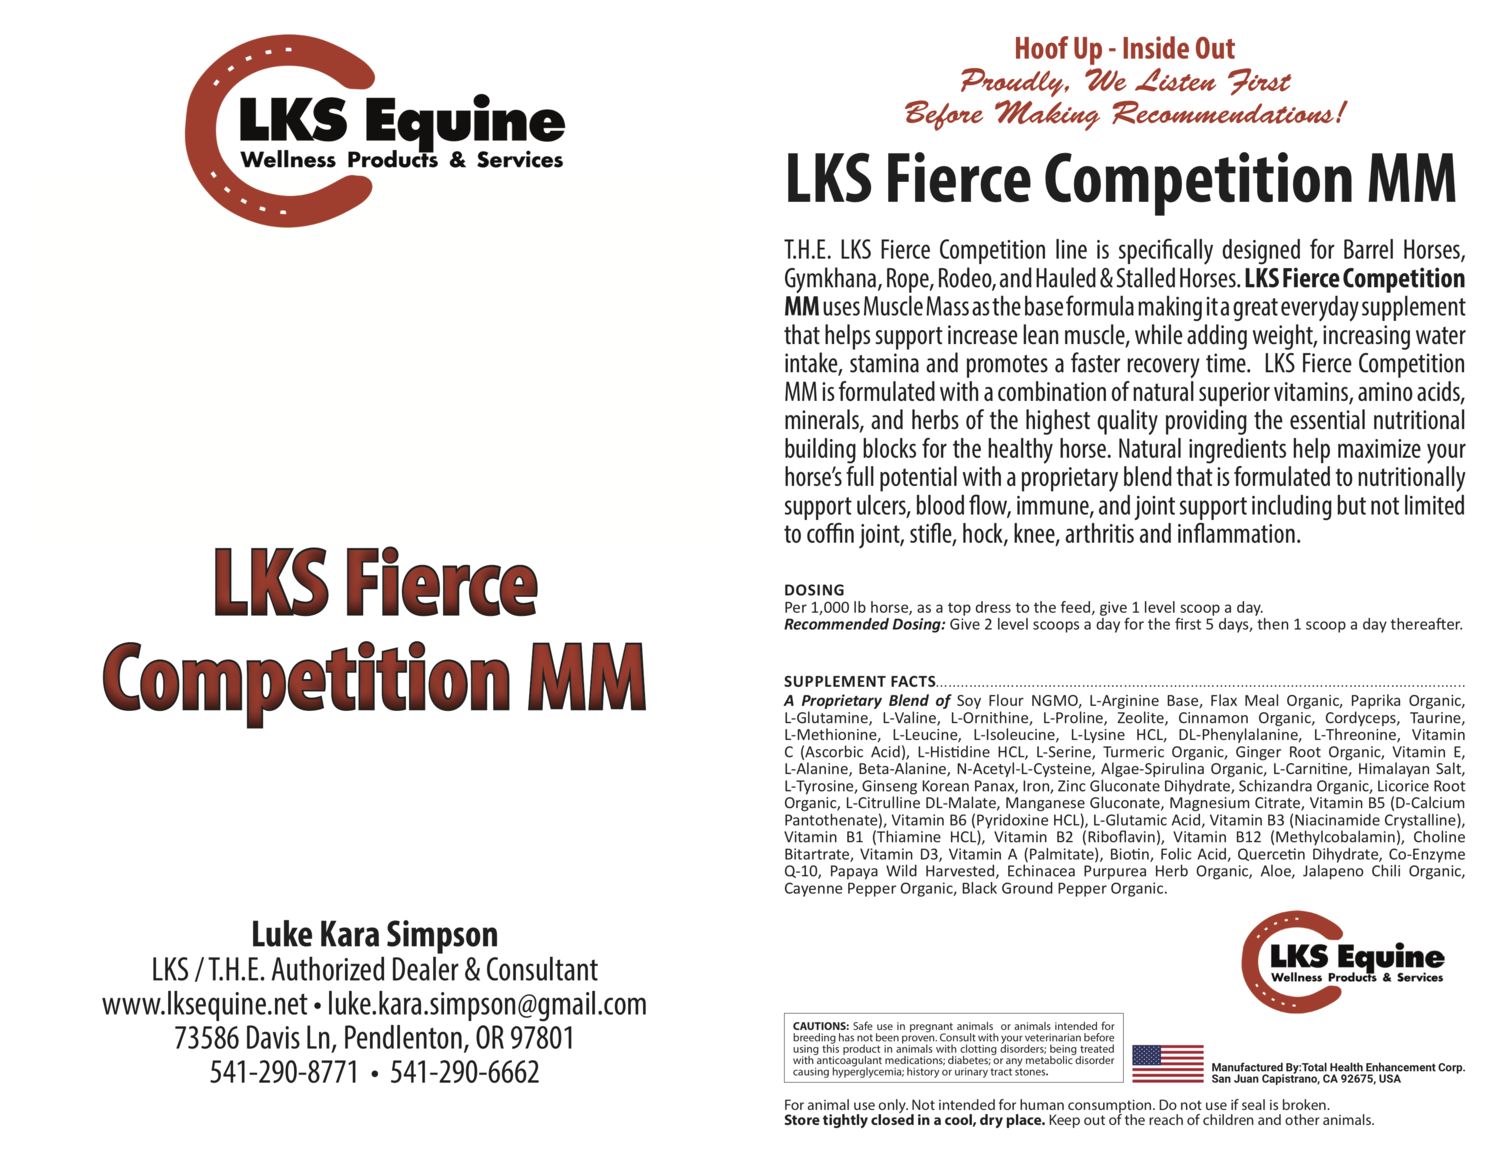 LKS Fierce Competition MM - Muscle Mass Base